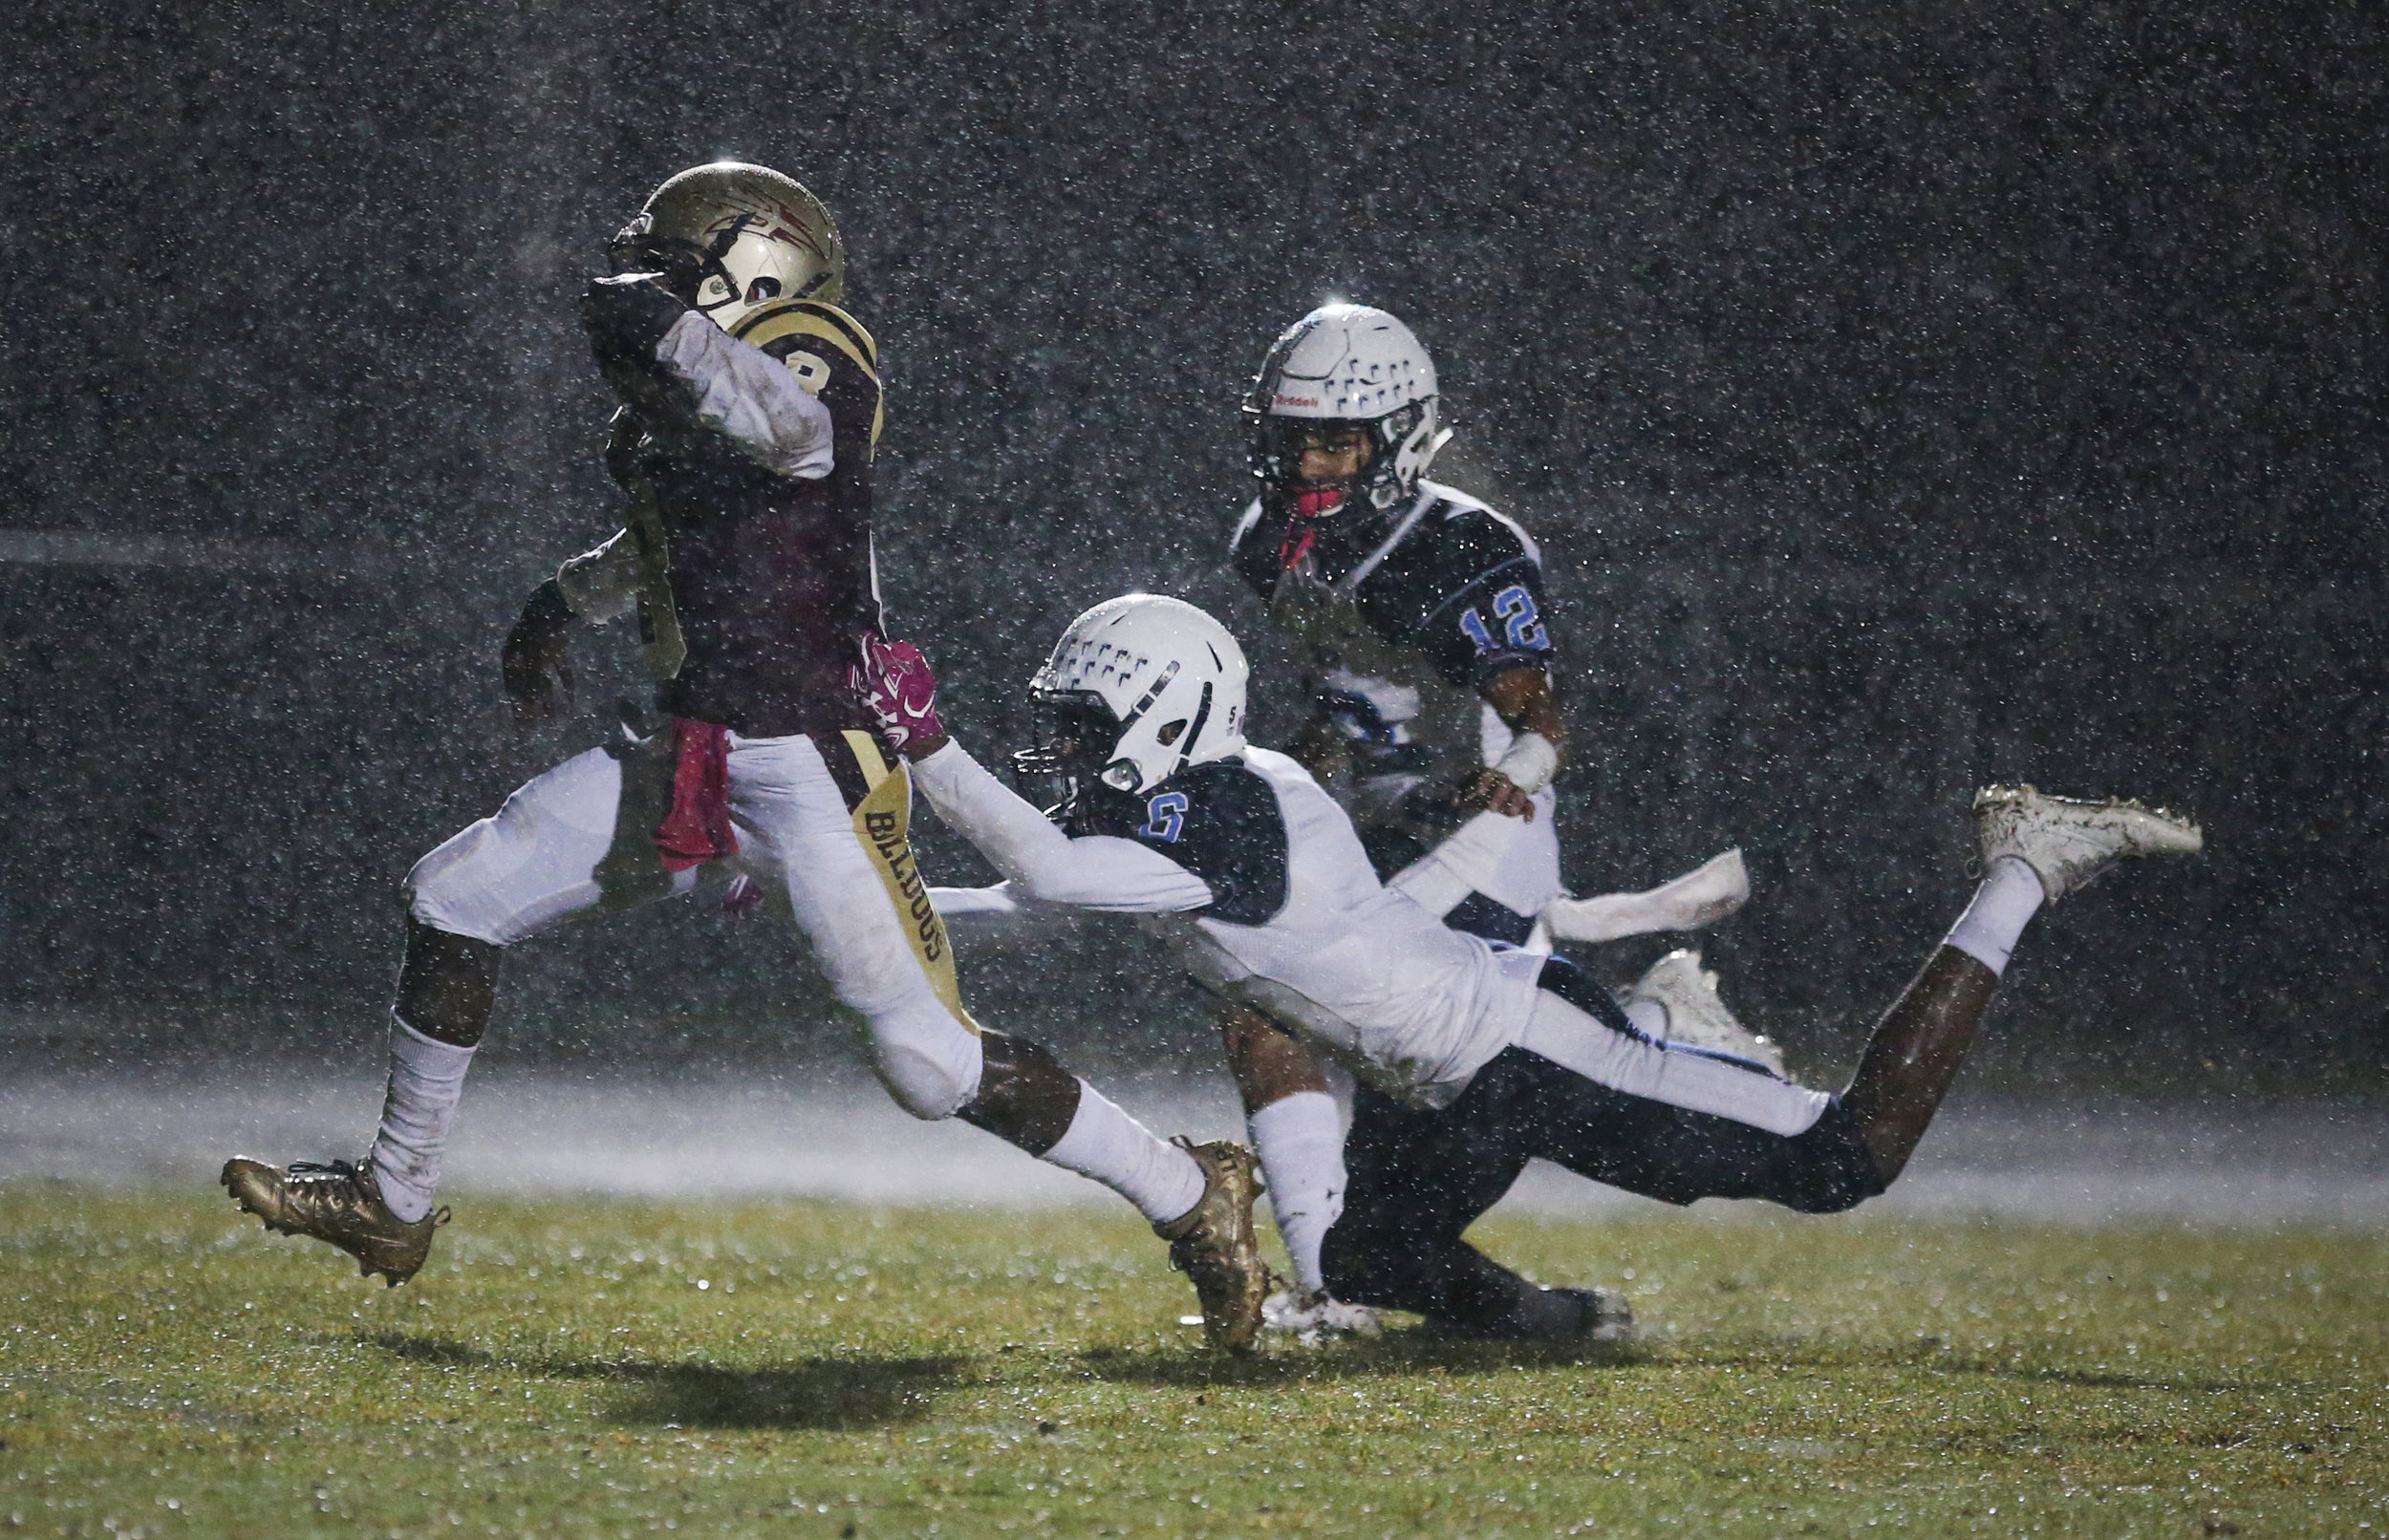 King's Fork's Darran Butts breaks past Indian River's Demetri Payne, center, and Isaiah Hyman for a first quarter touchdown.